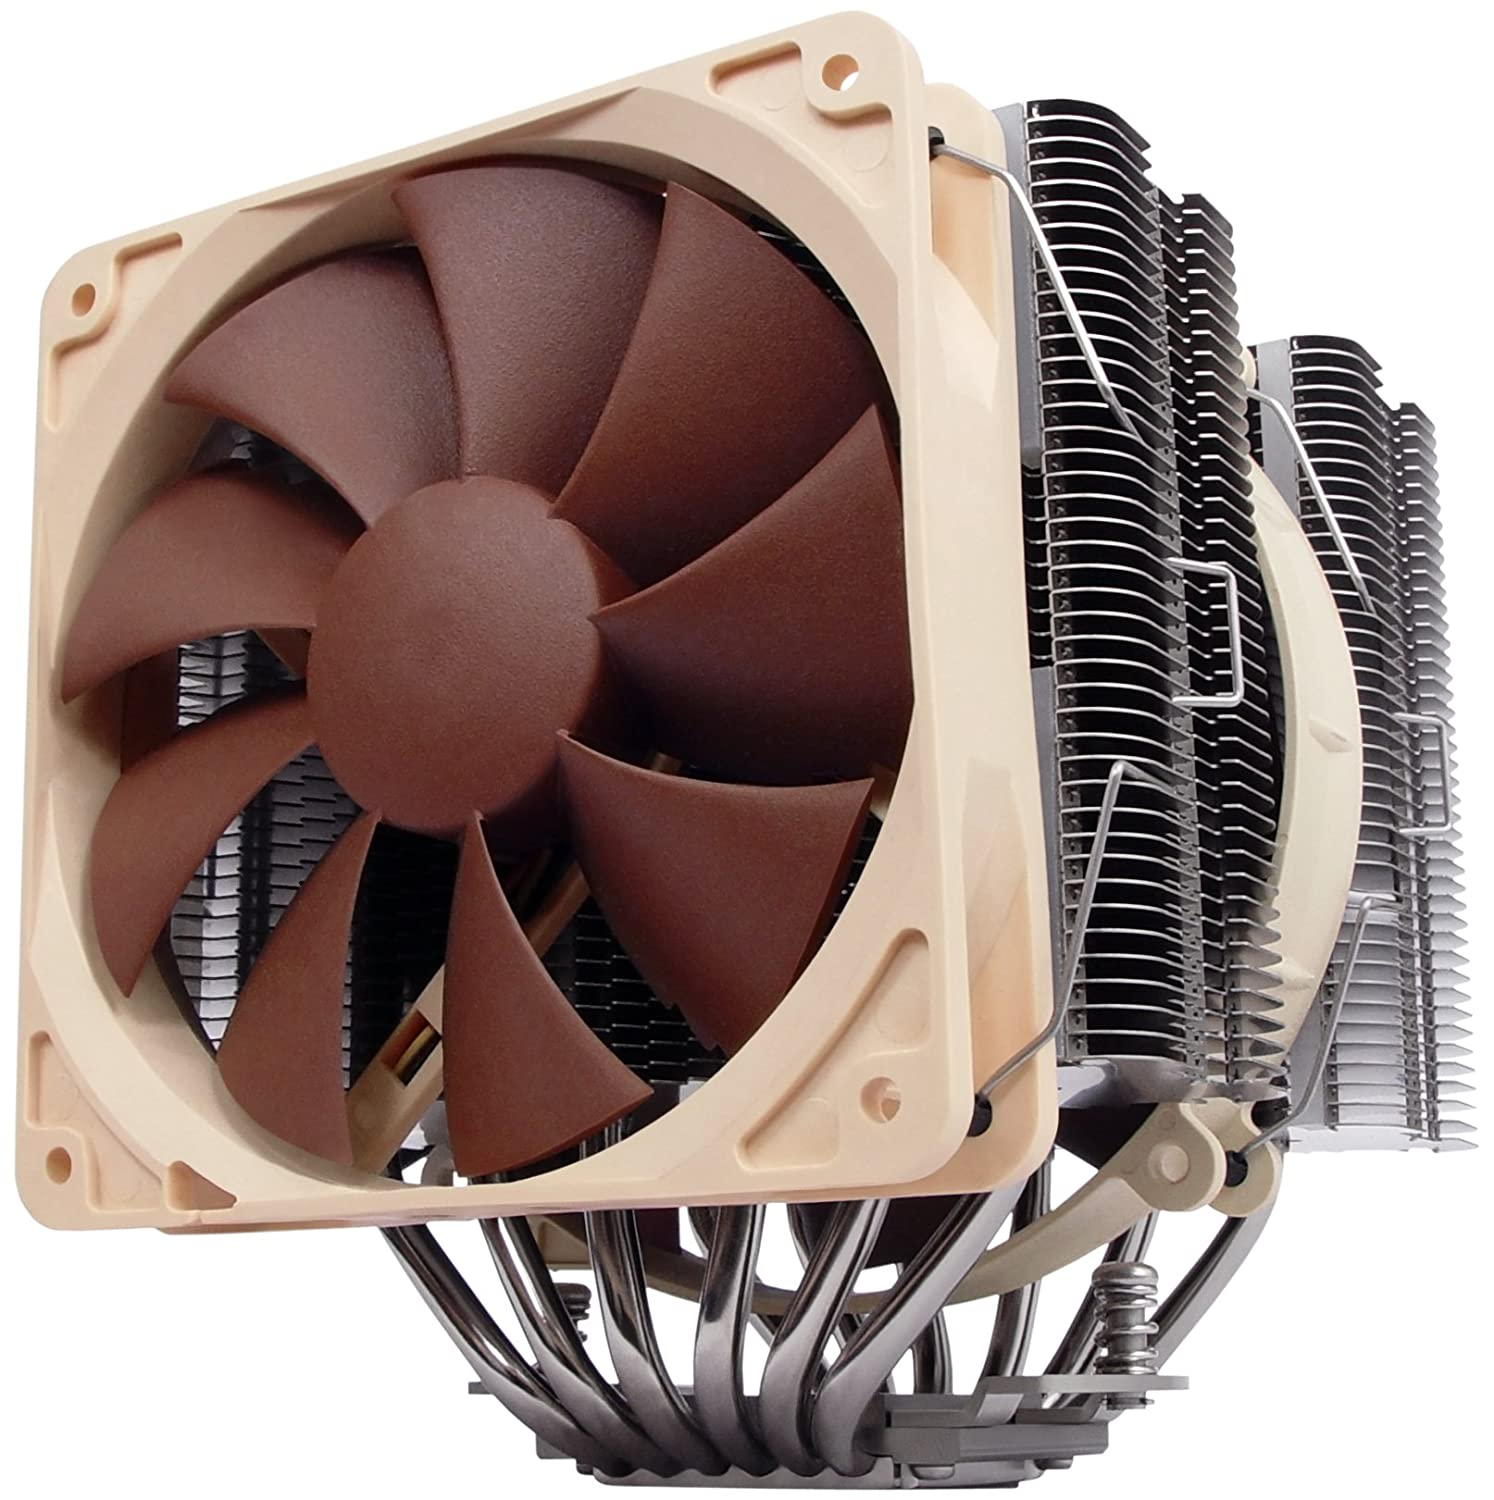 Where To Find The Best Air Cooler for i7 7700k? Here's a